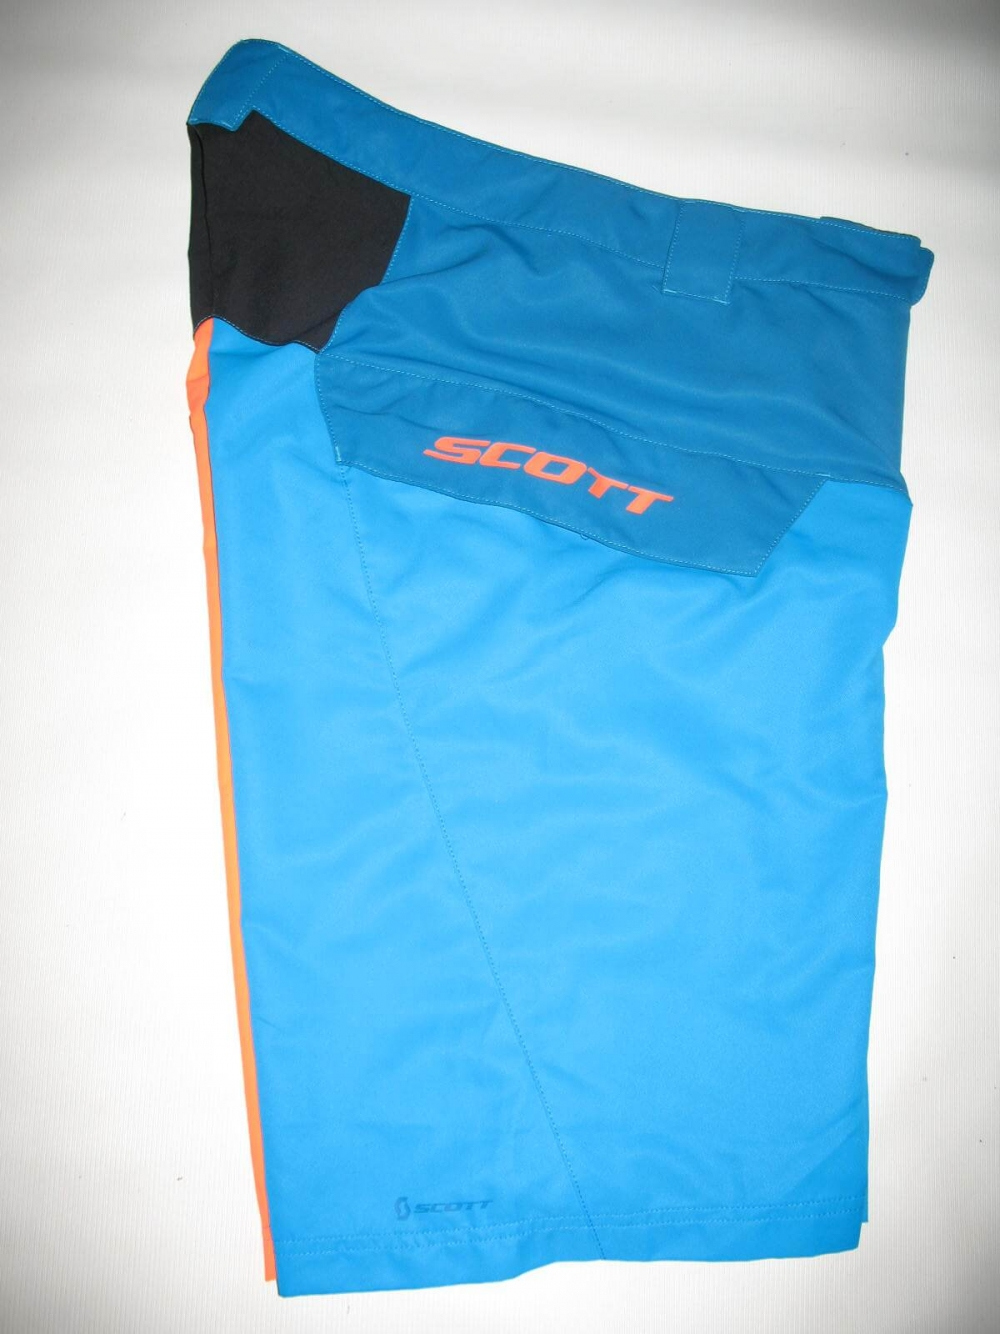 Велошорты SCOTT trail 20 LSfit shorts (размер M) - 4